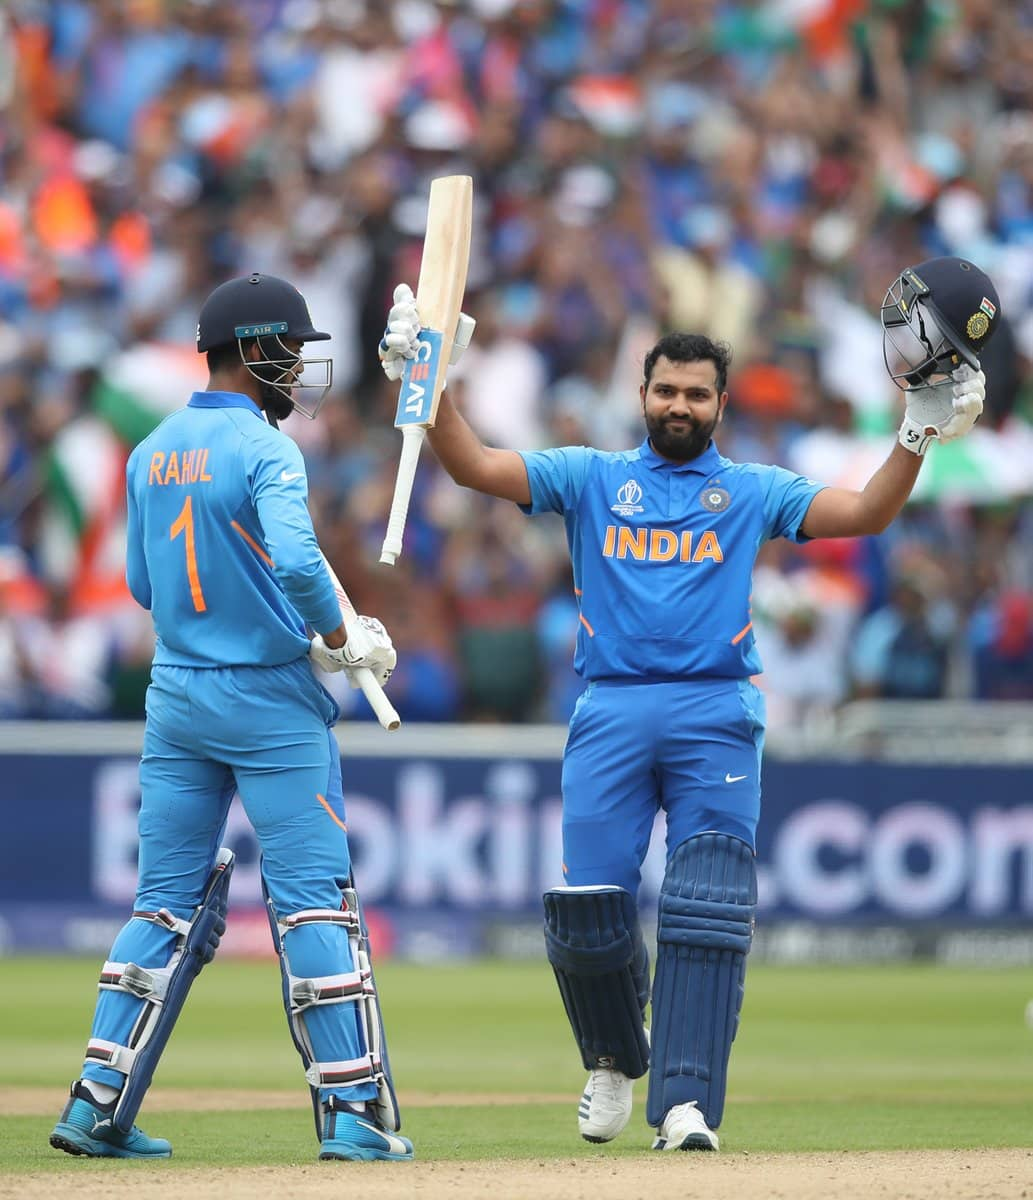 India vs Bangladesh, World Cup 2019: As it happened